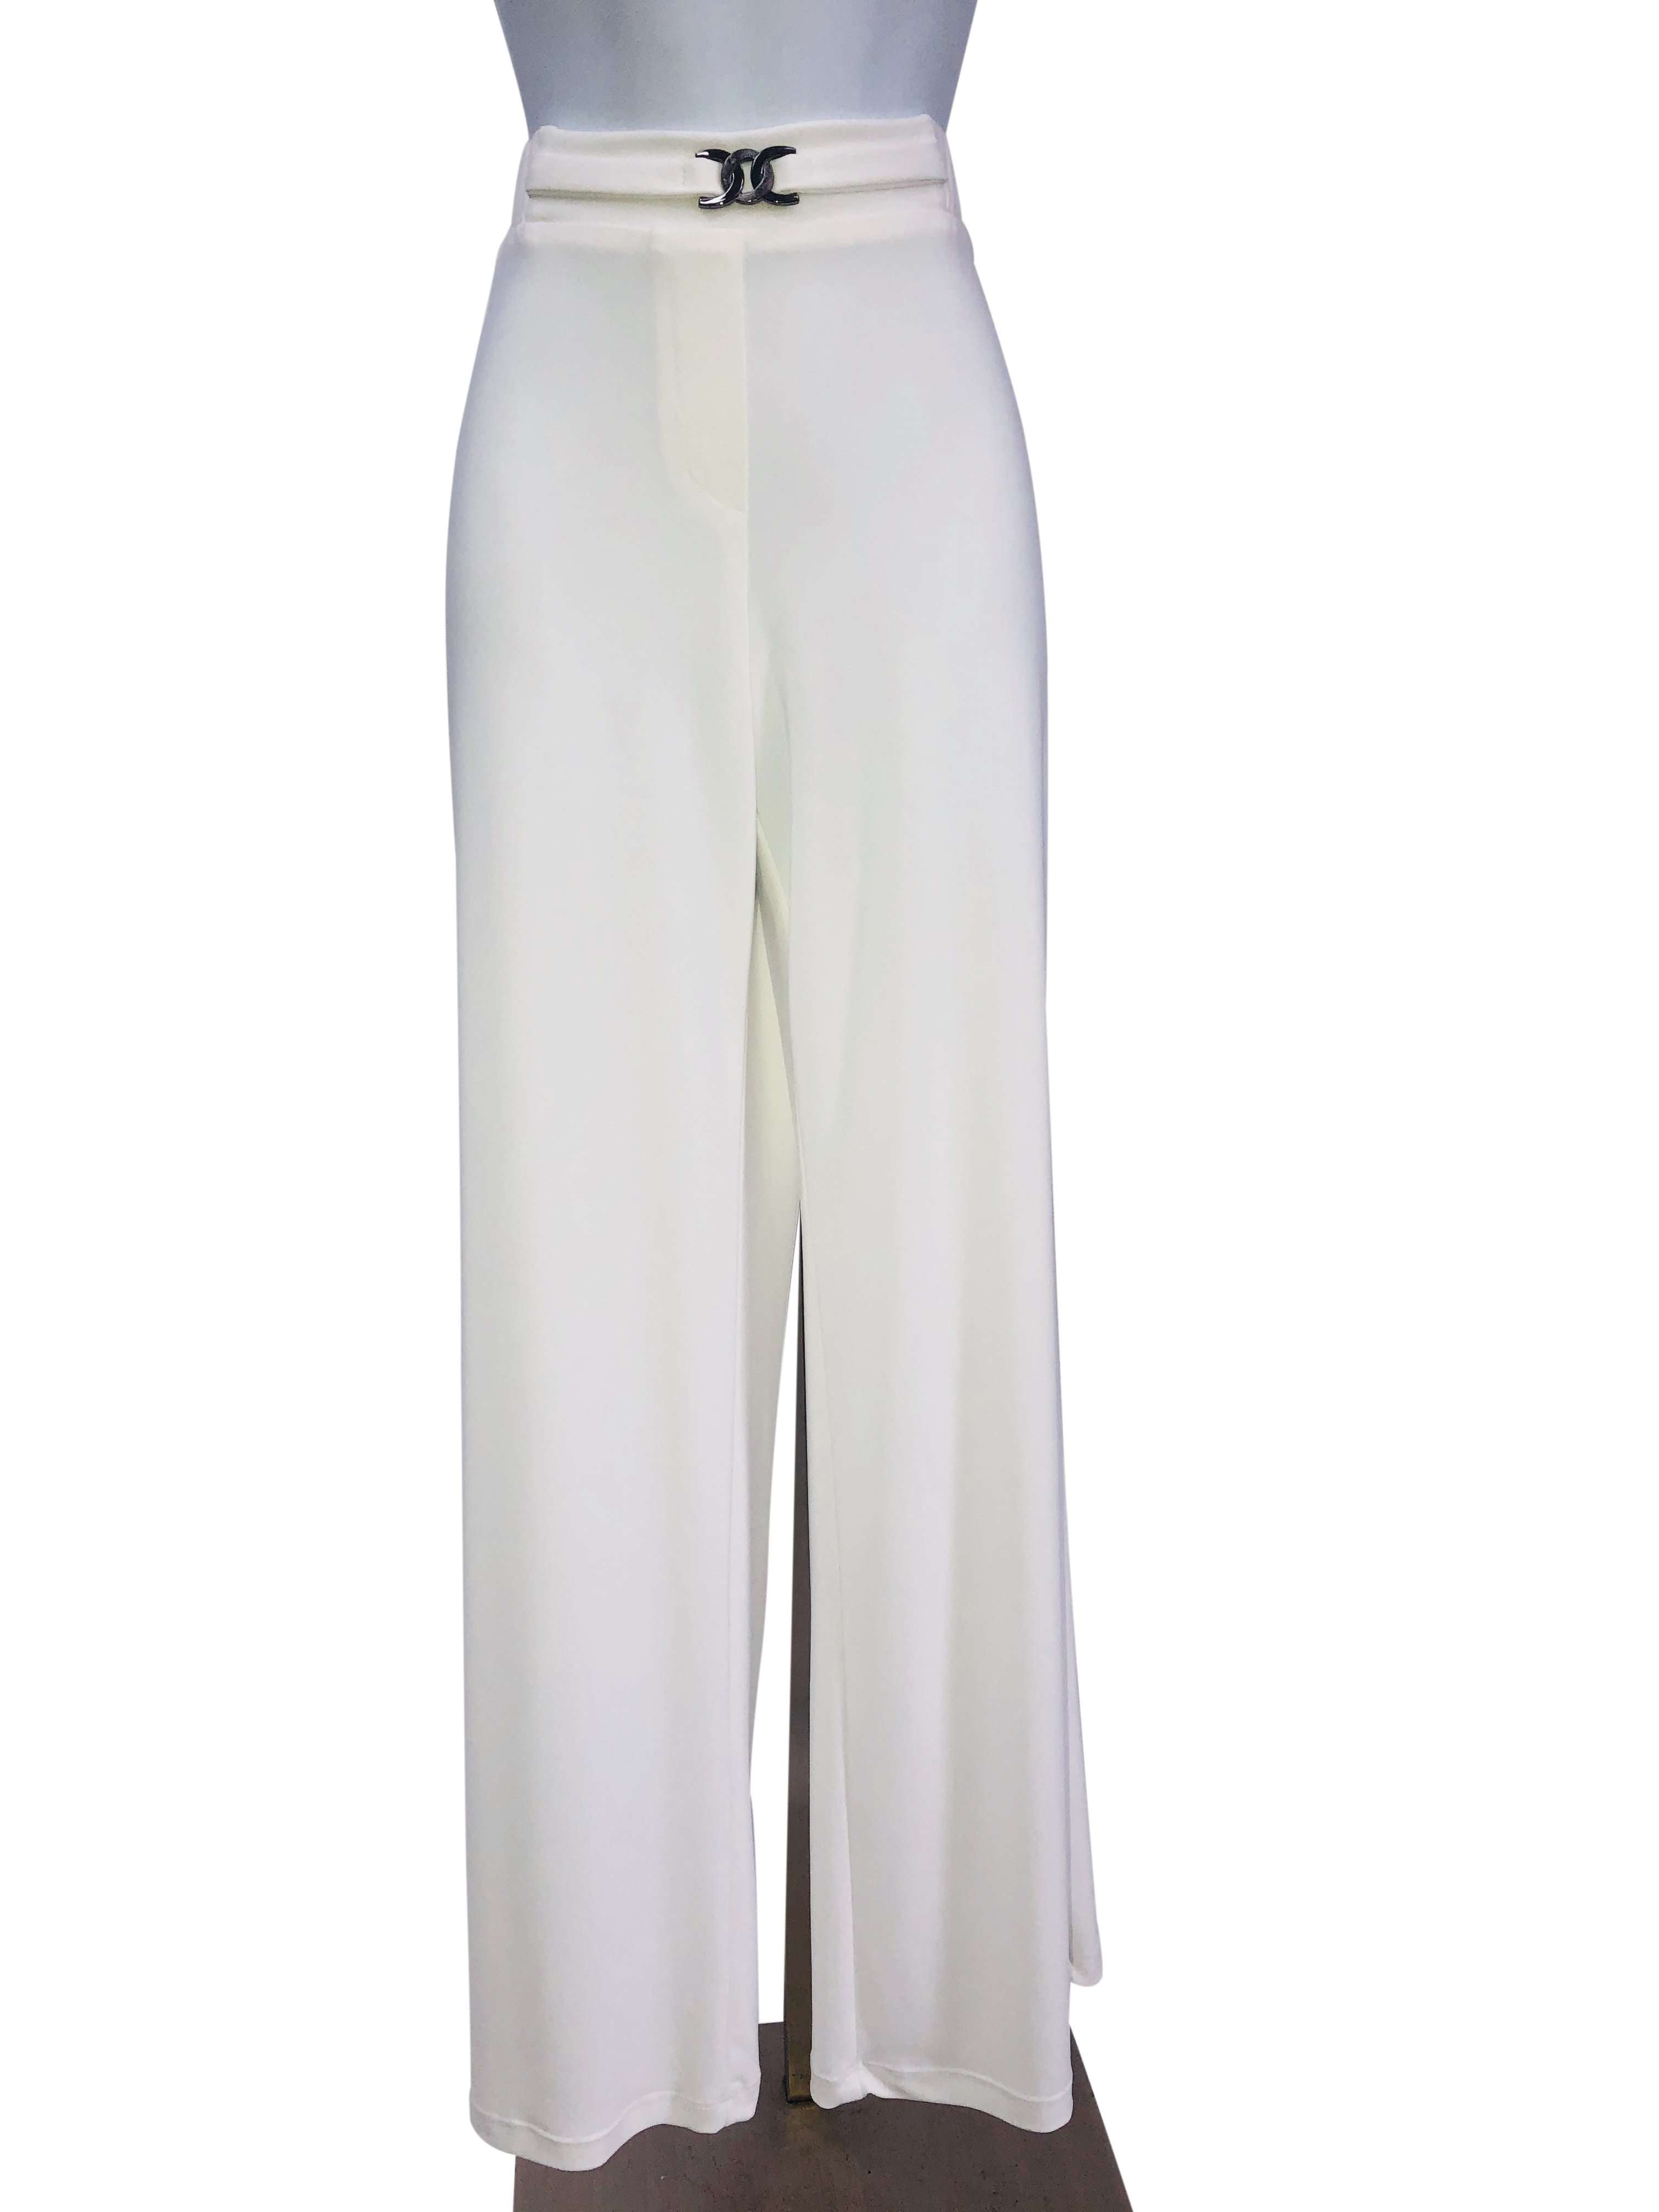 Women's Ivory Stretch Pants - Yvonne Marie